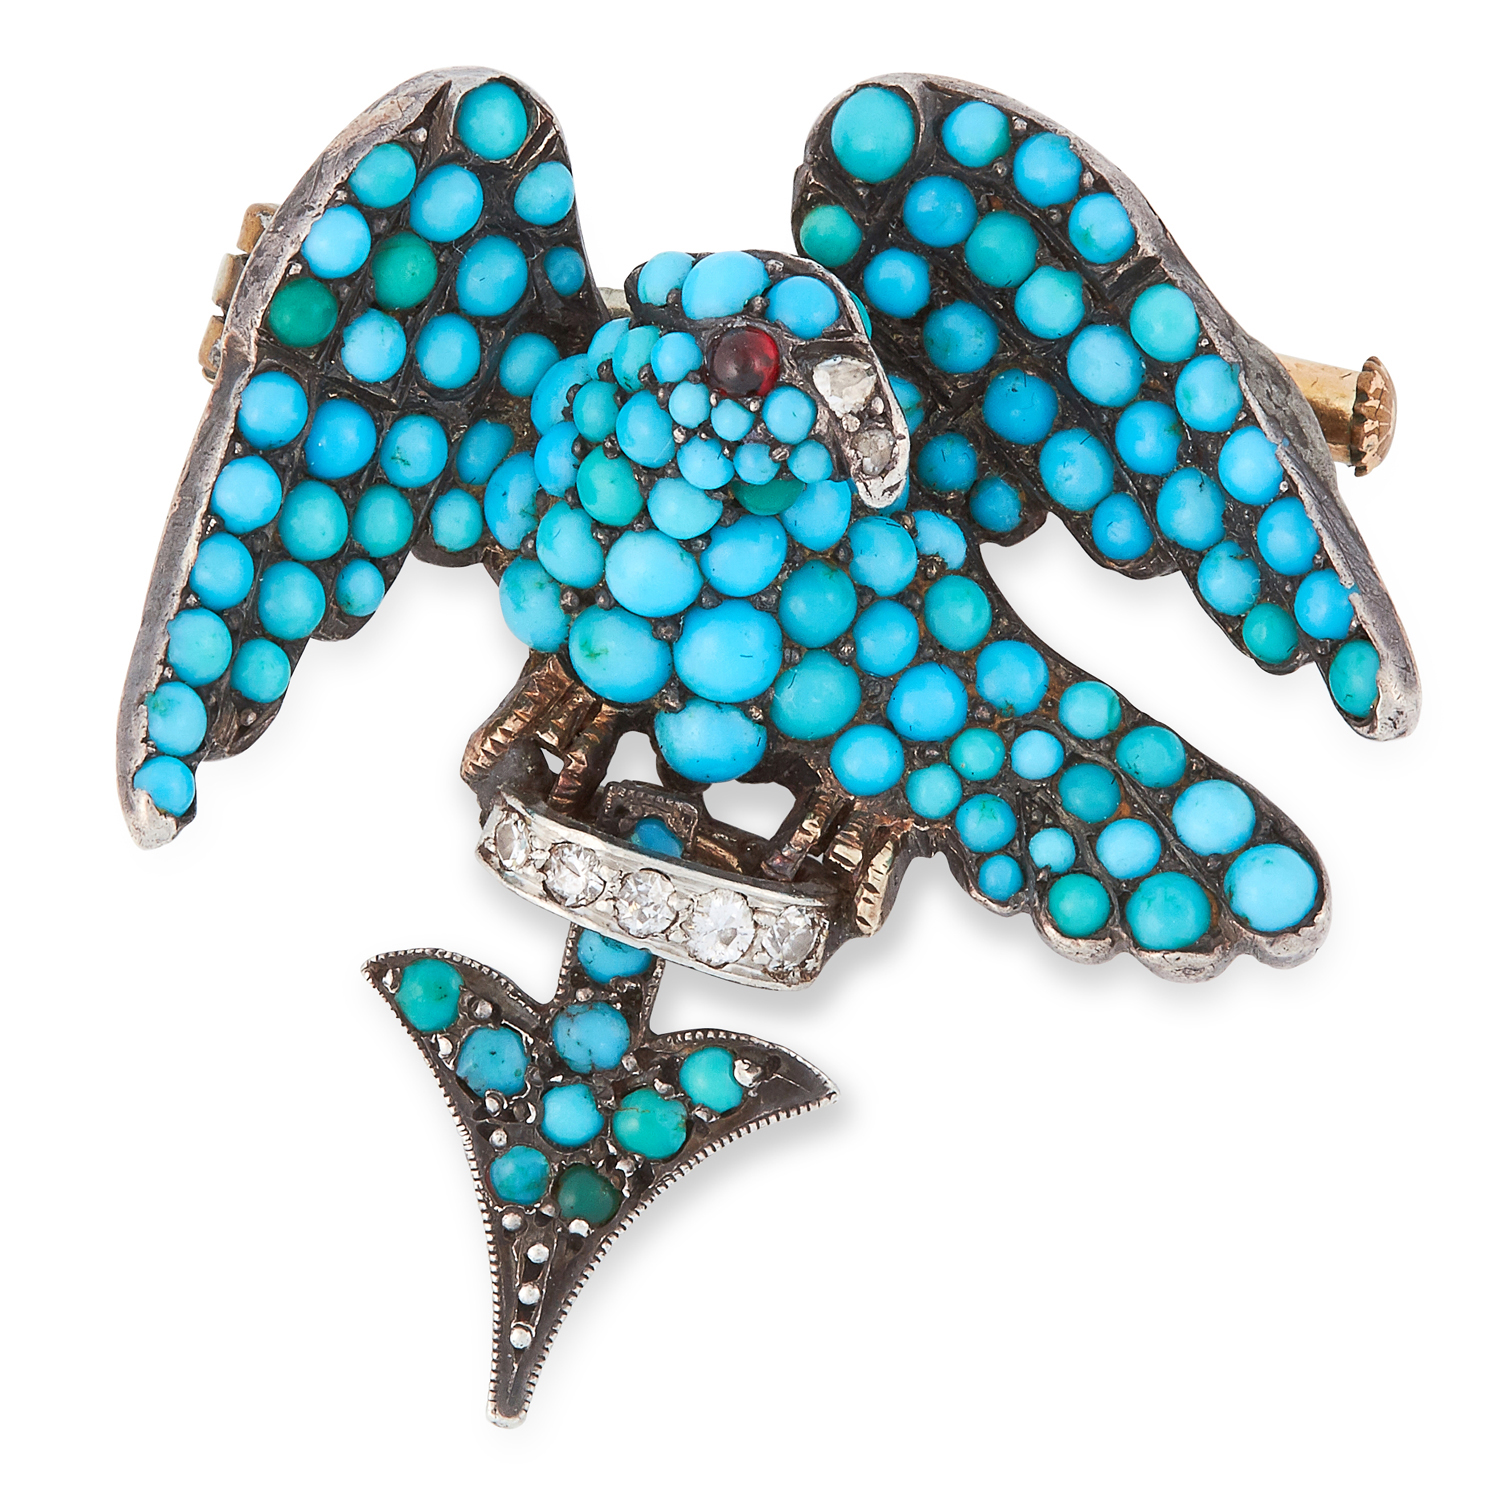 AN ANTIQUE TURQUOISE, GARNET AND DIAMOND EAGLE BROOCH, 19TH CENTURY set with cabochon turquoise,